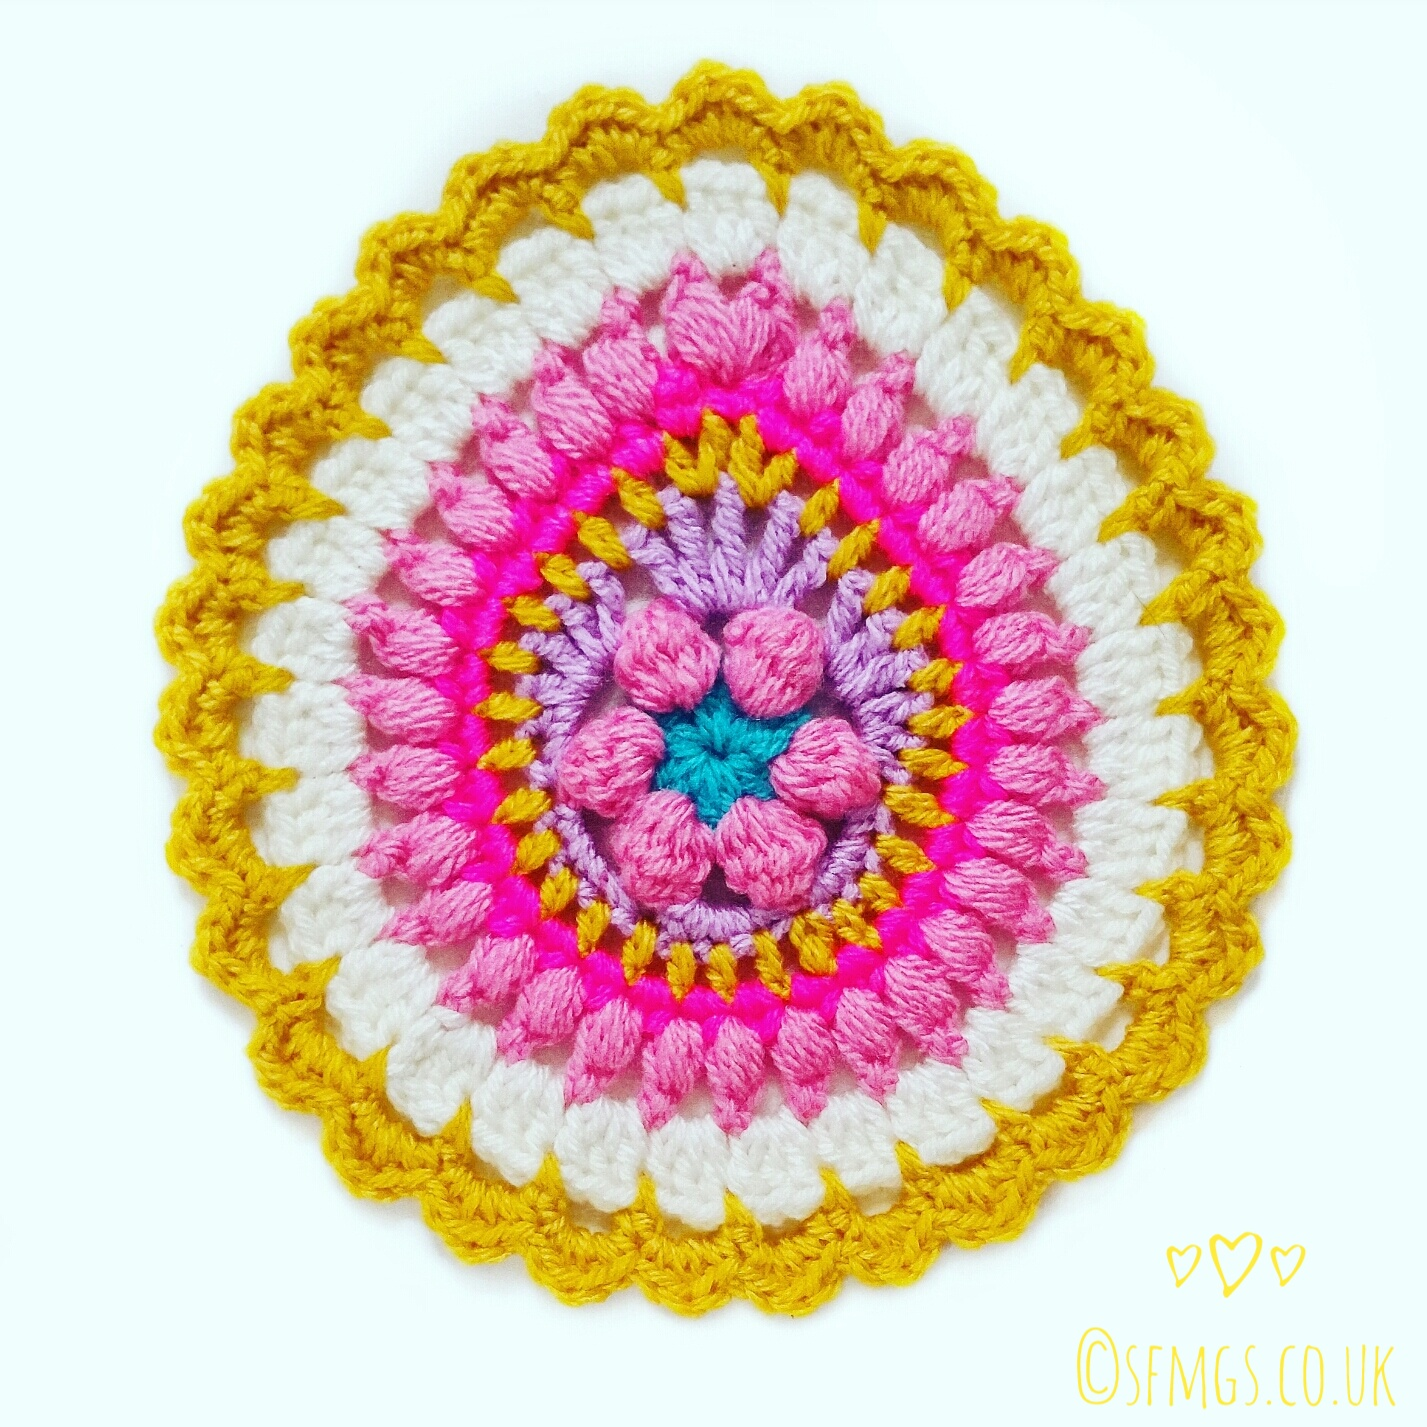 Free Crochet Pattern   Easter Egg Mandala For Placemats, Coasters And Easter Bunting Flags